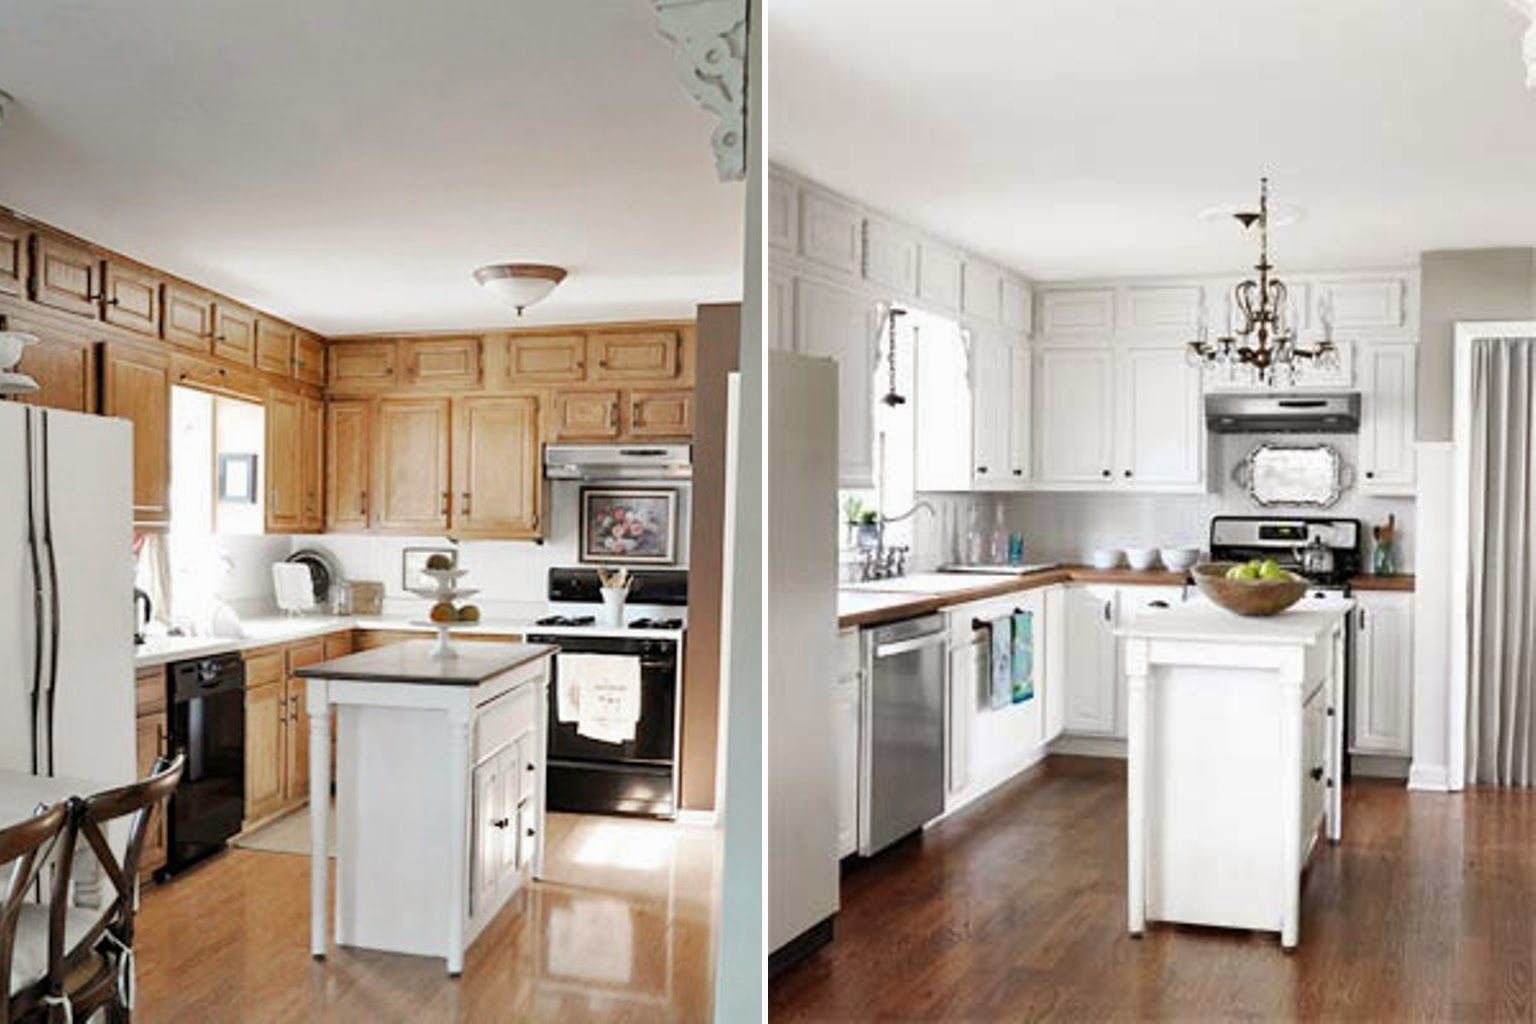 paint kitchen cabinets white before and after kitchen cabinets before after old kitchen on kitchen cabinets painted before and after id=91375